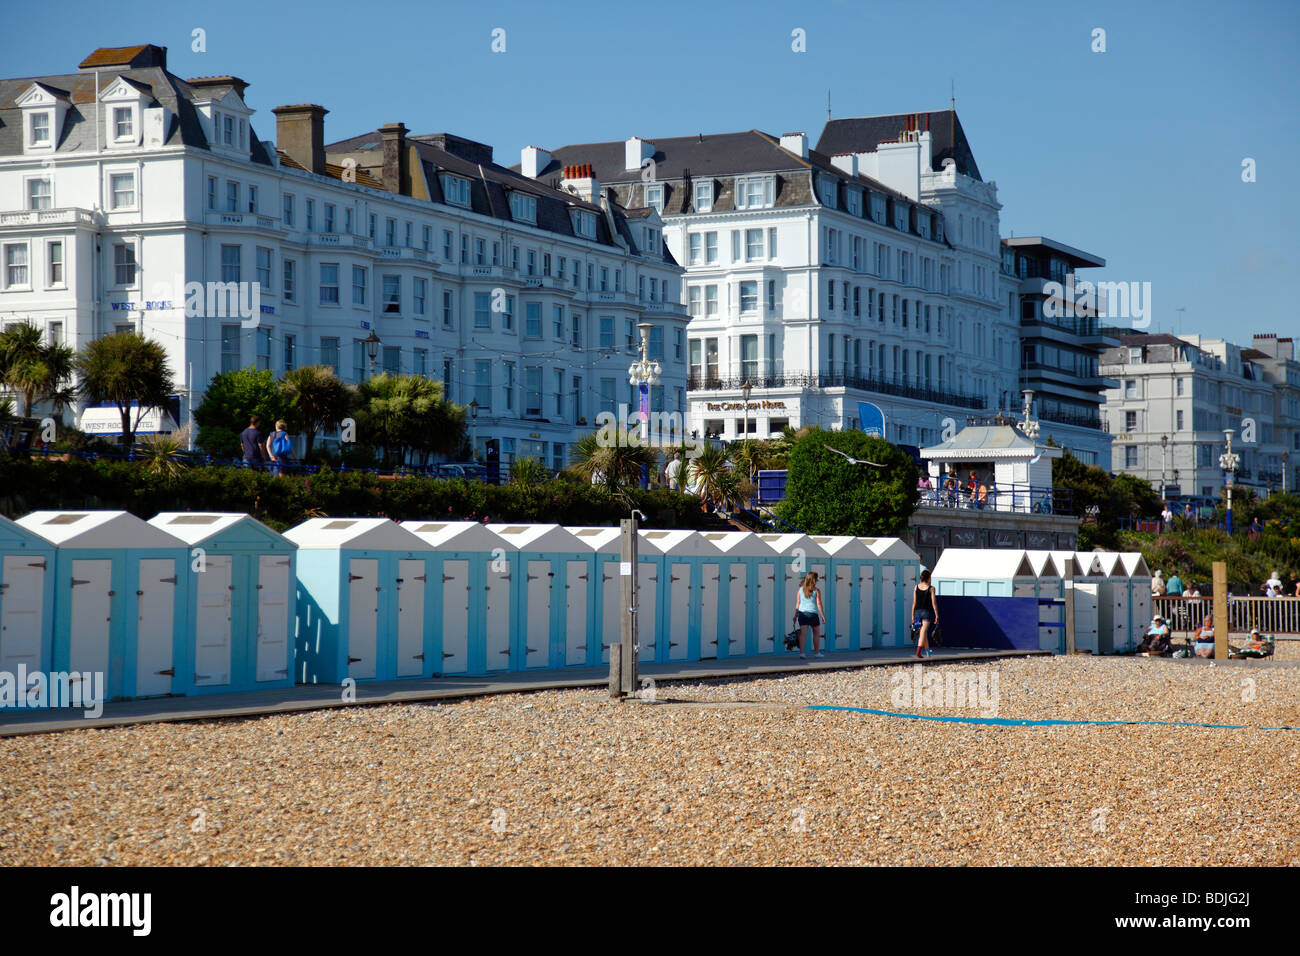 Hotels Huts Stock Photos Hotels Huts Stock Images Alamy